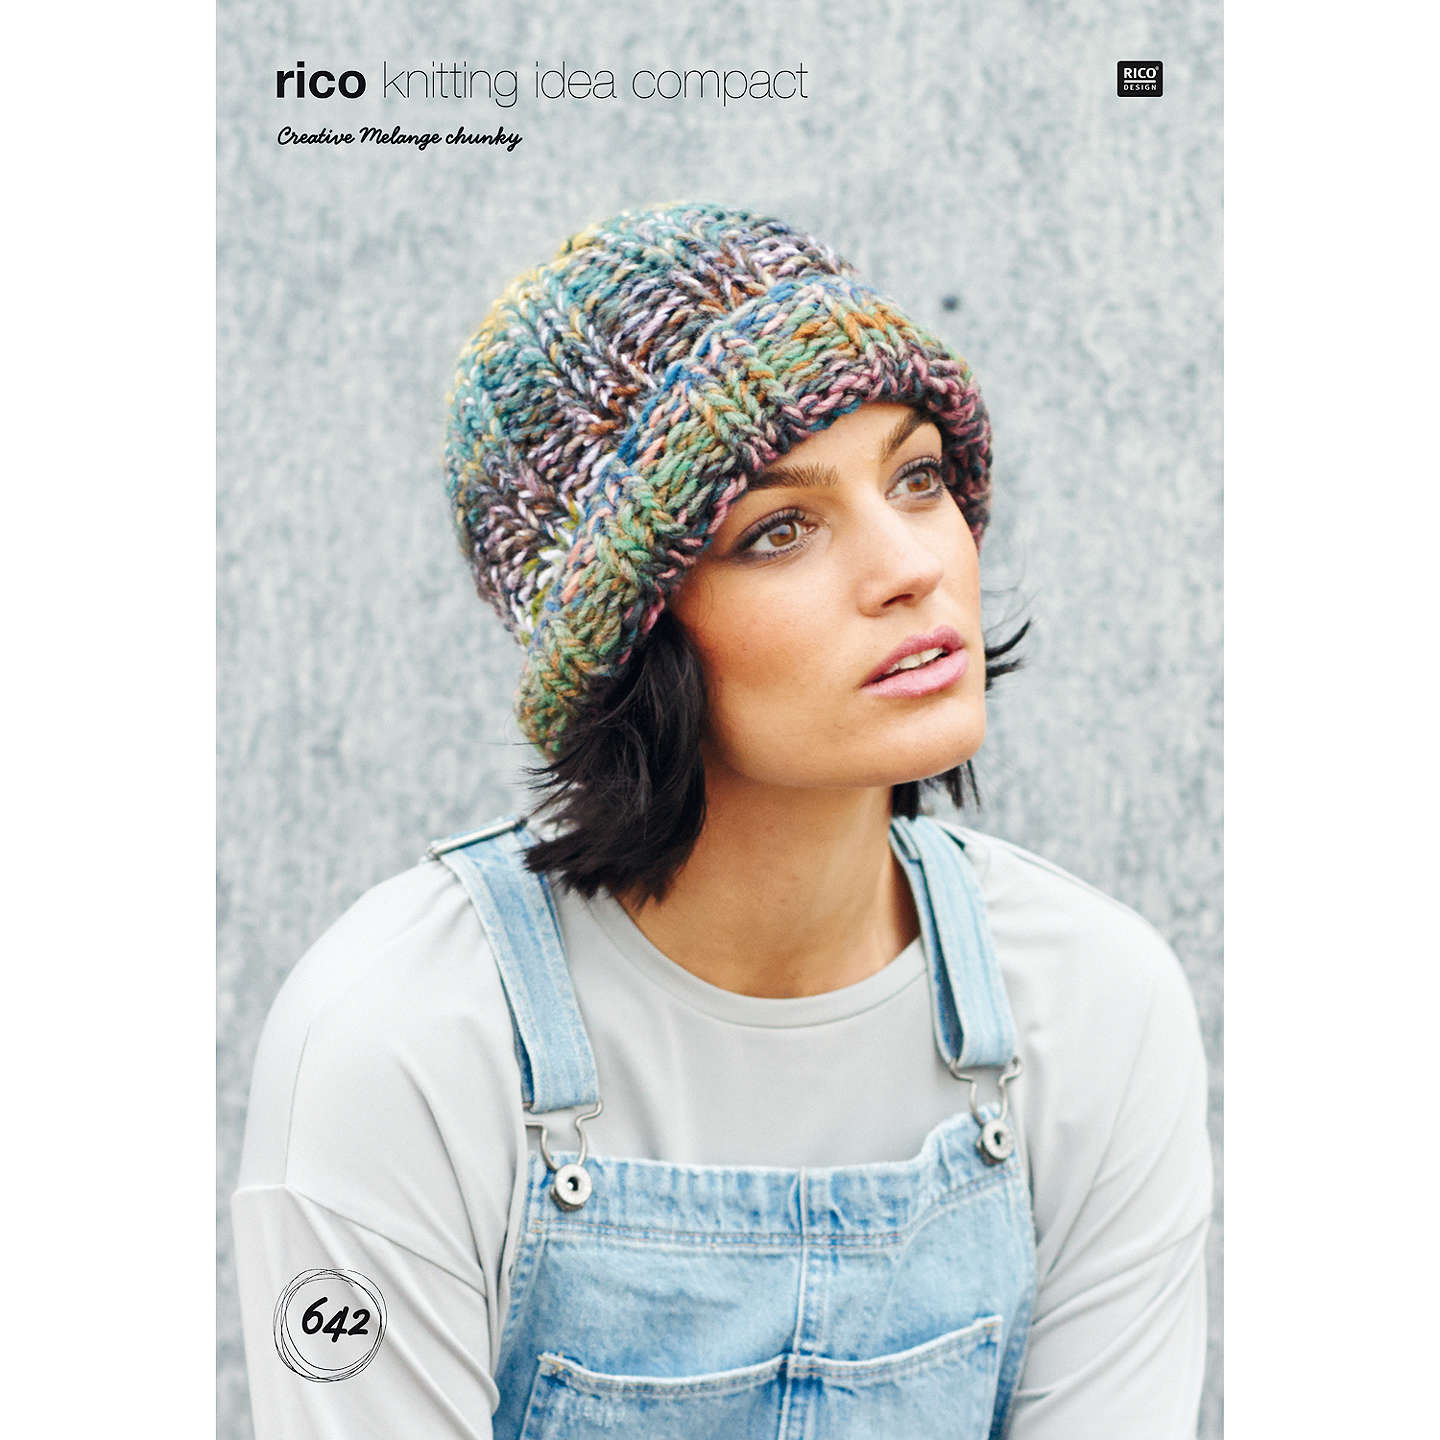 Rico Creative Melange Chunky Hat Knitting Pattern, 642 at John Lewis